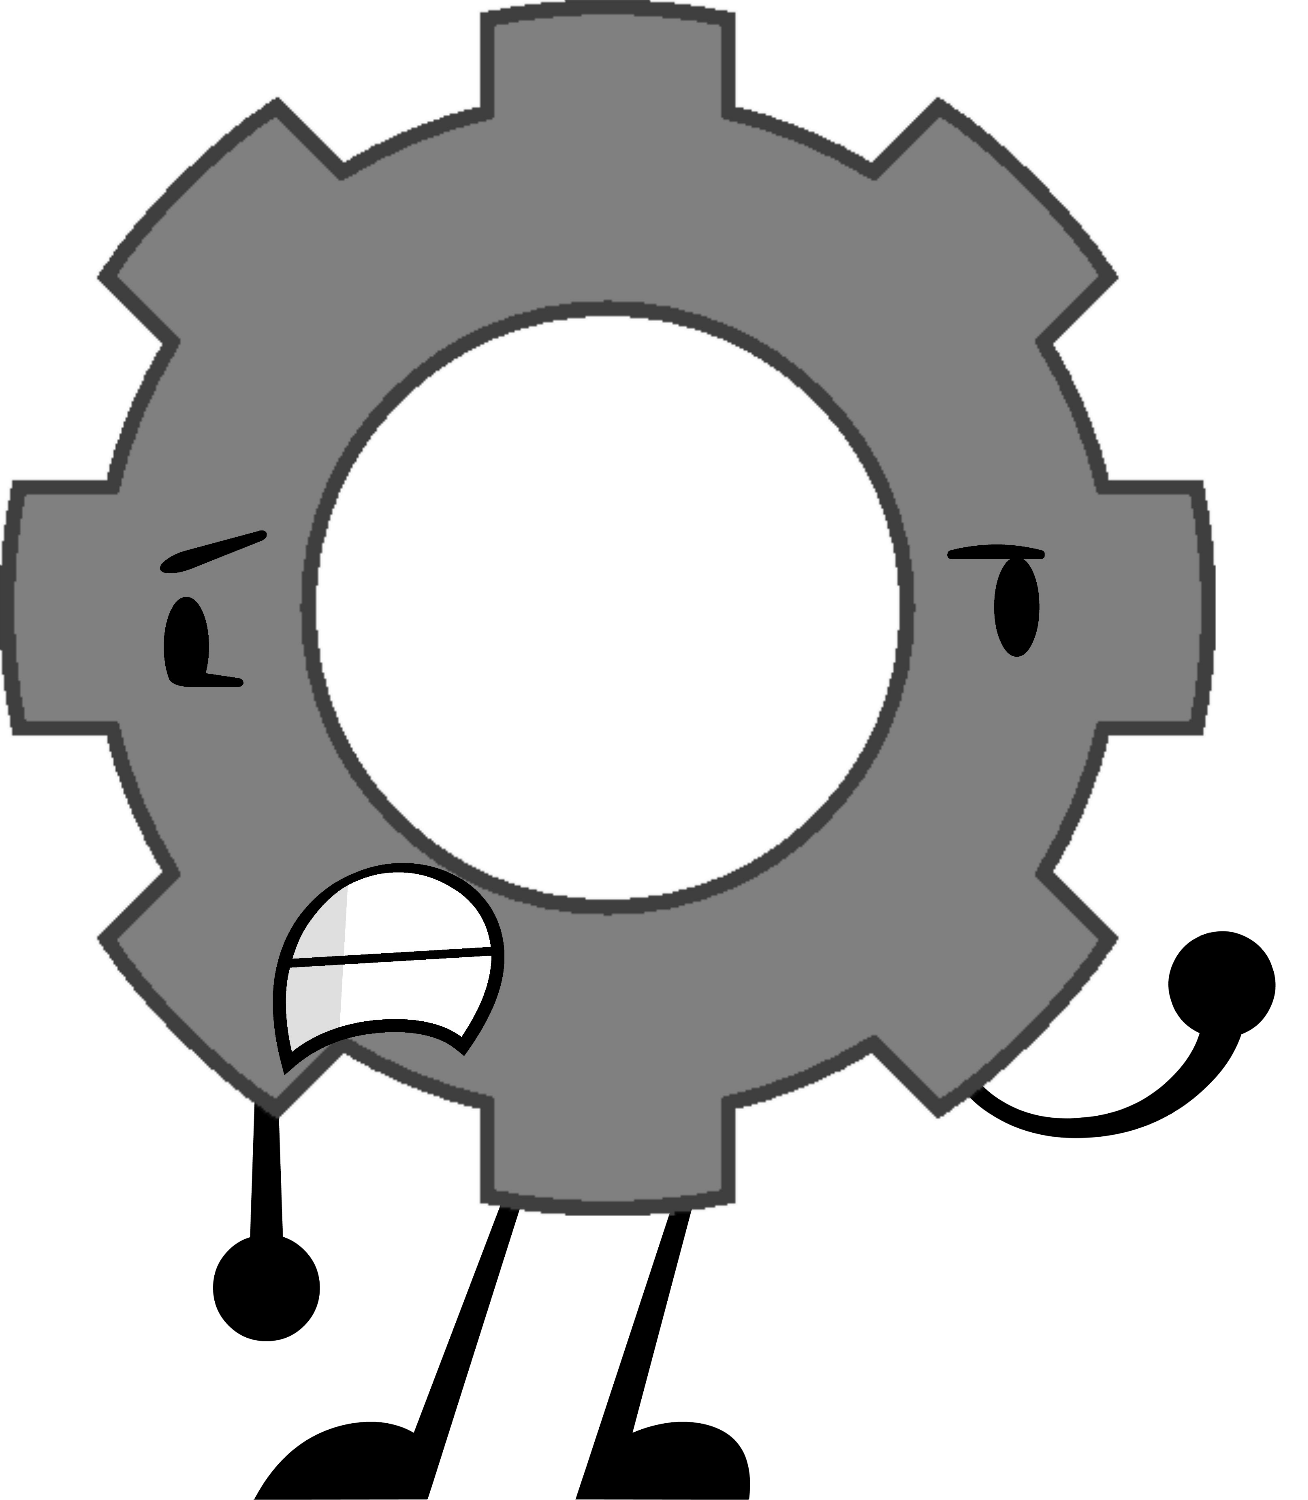 Television clipart round object. Gear oppose wikia fandom